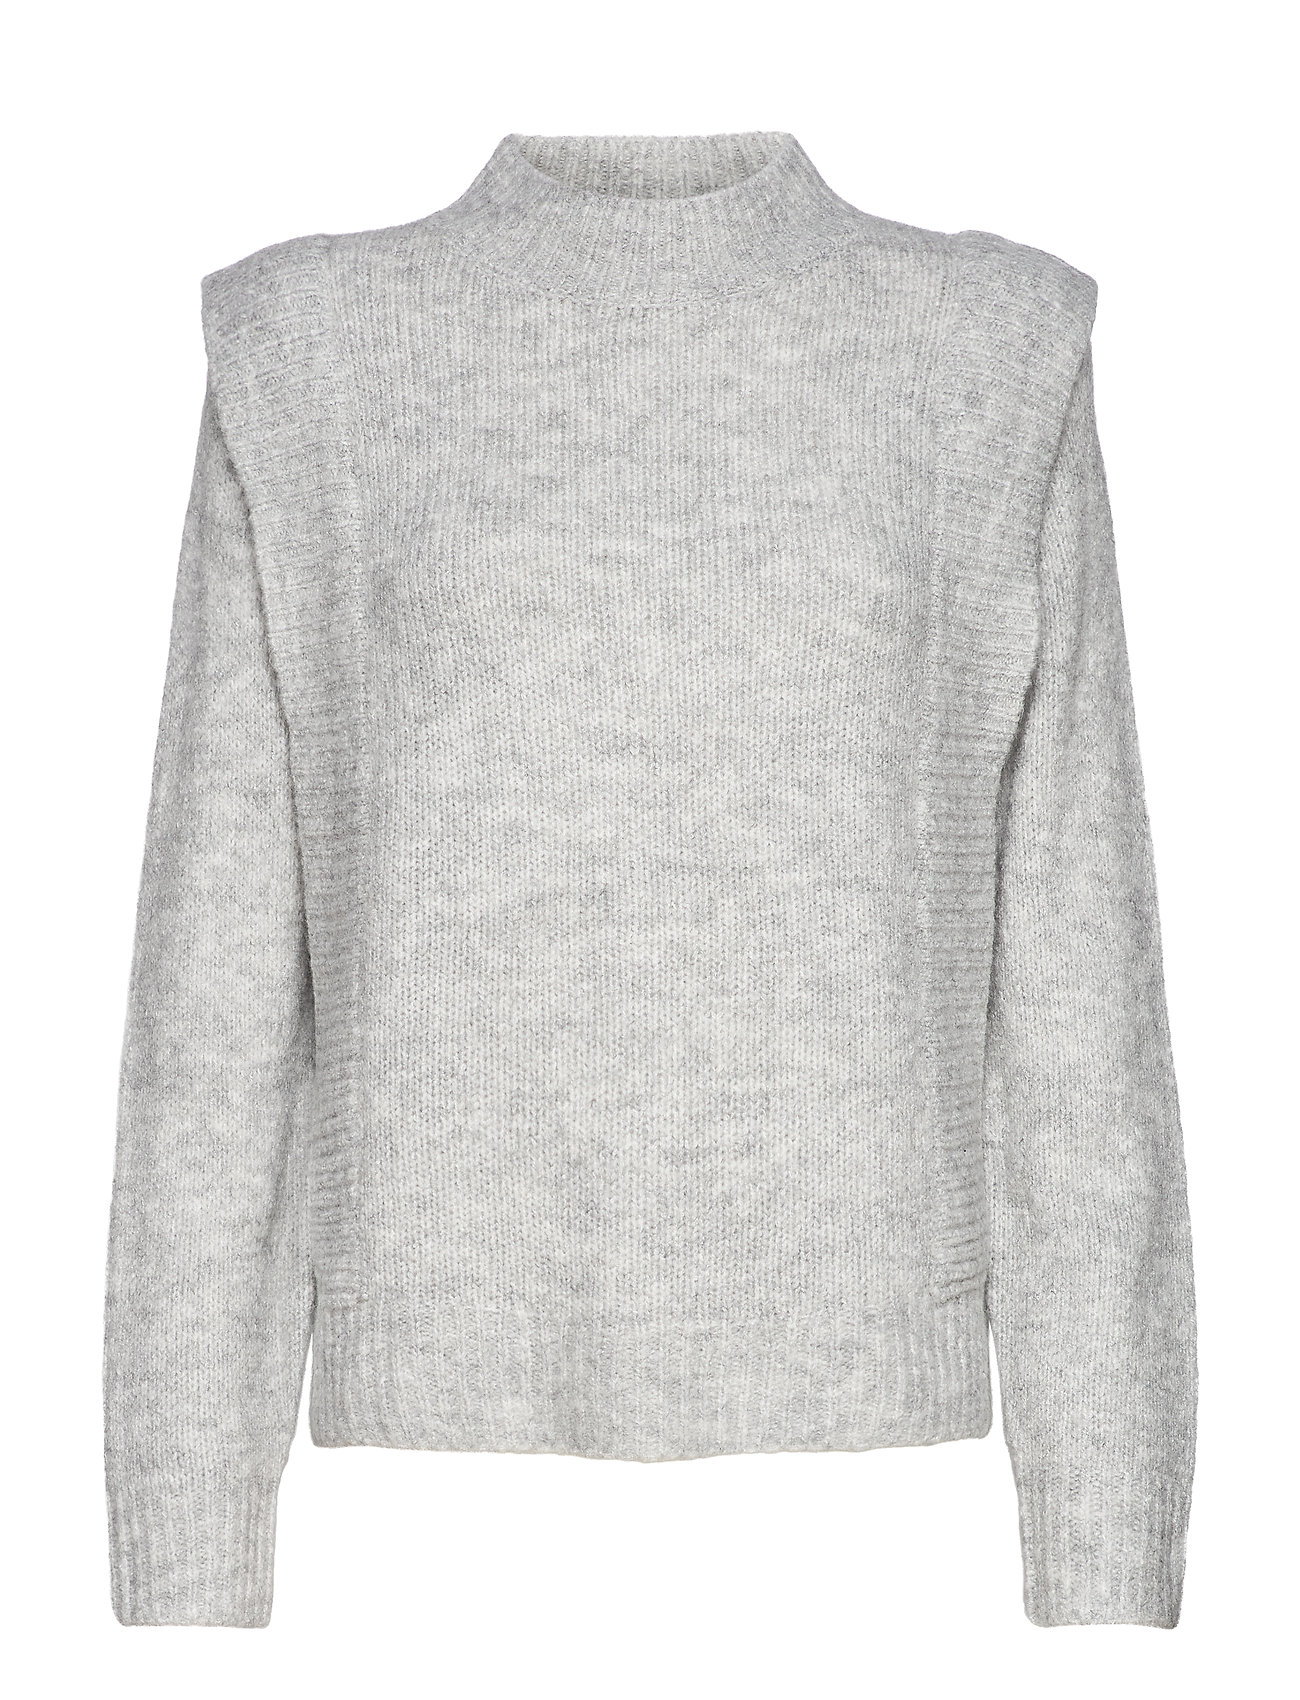 Image of Tuck Sweater Wp Strikket Trøje Grå IBEN (3484277721)